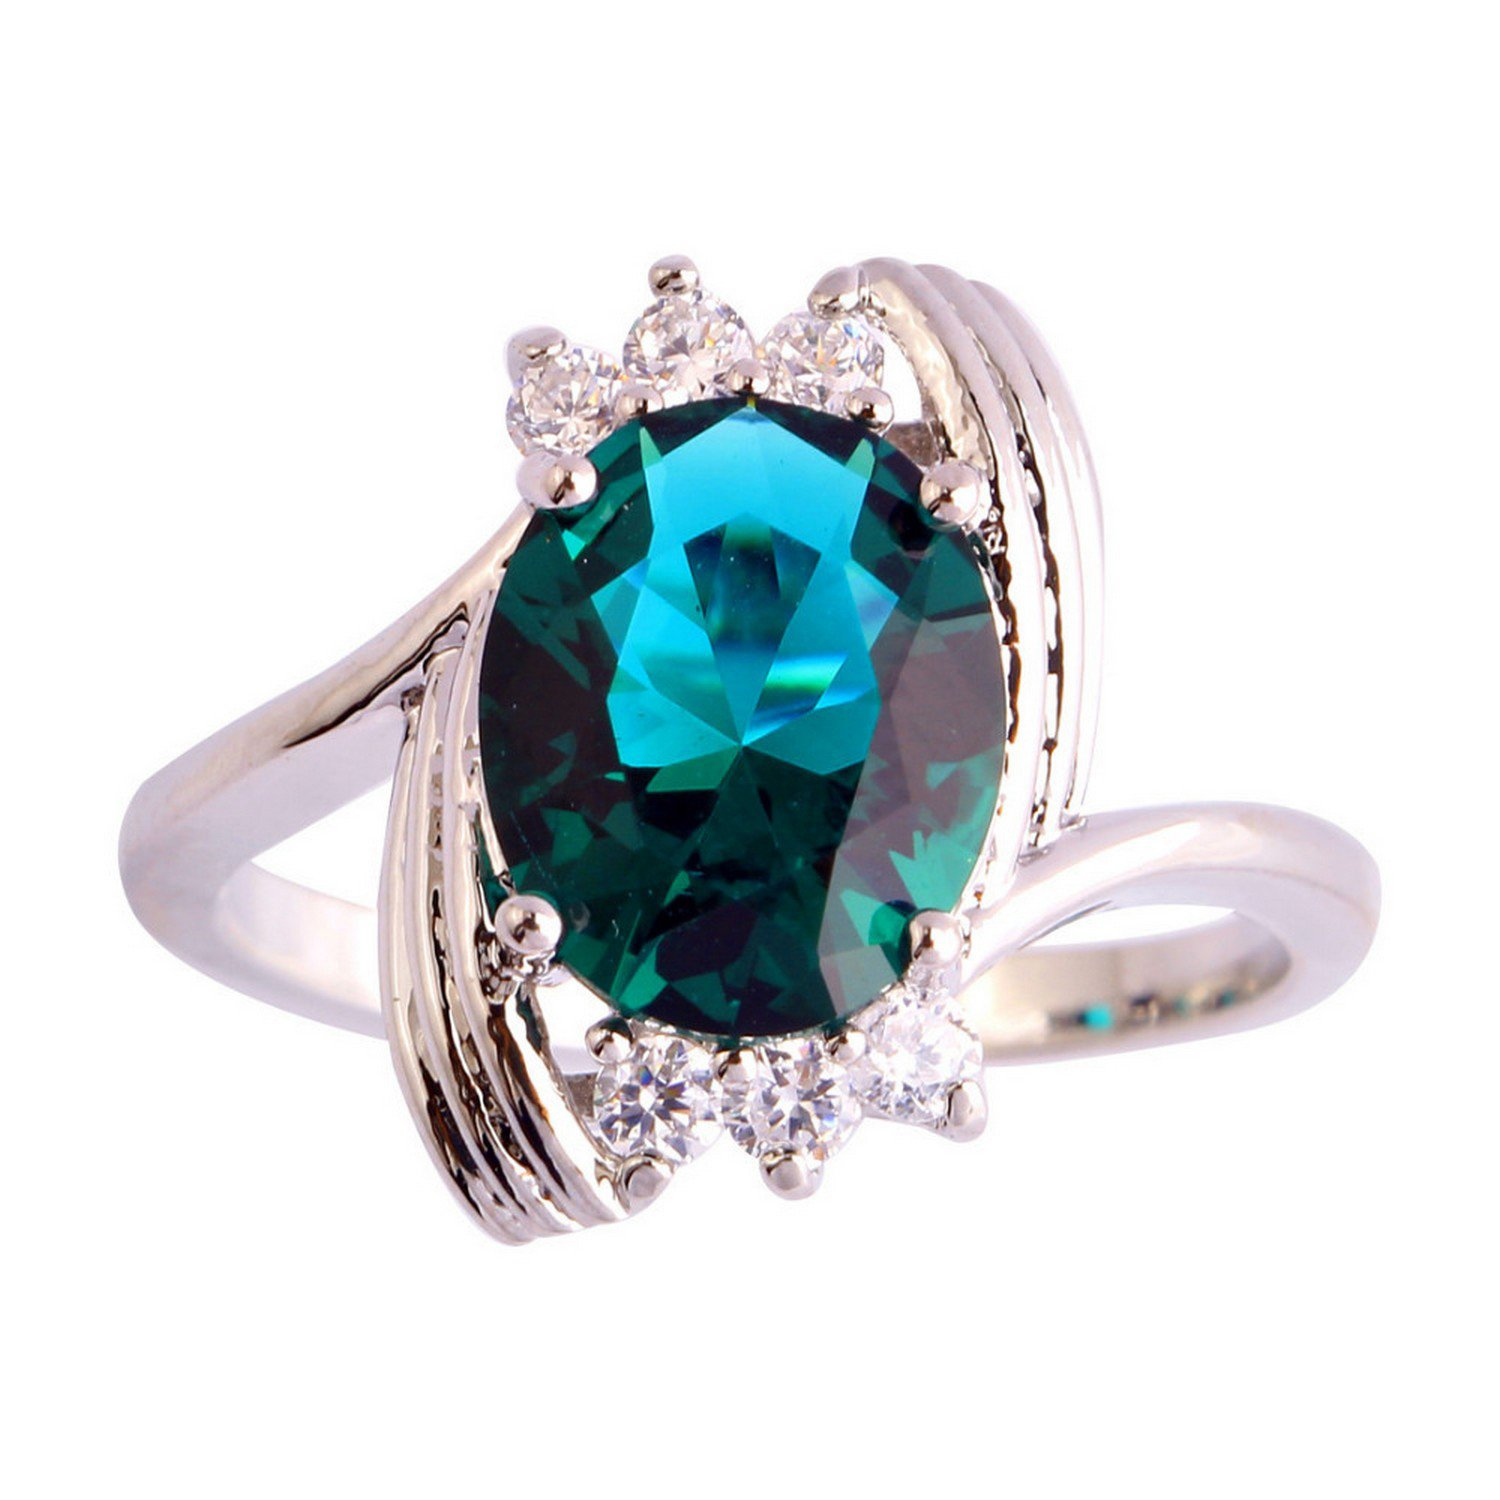 Gemmart Saucy Green White CZ Silver Color Ring Size 6 7 8 9 womens engagement rings